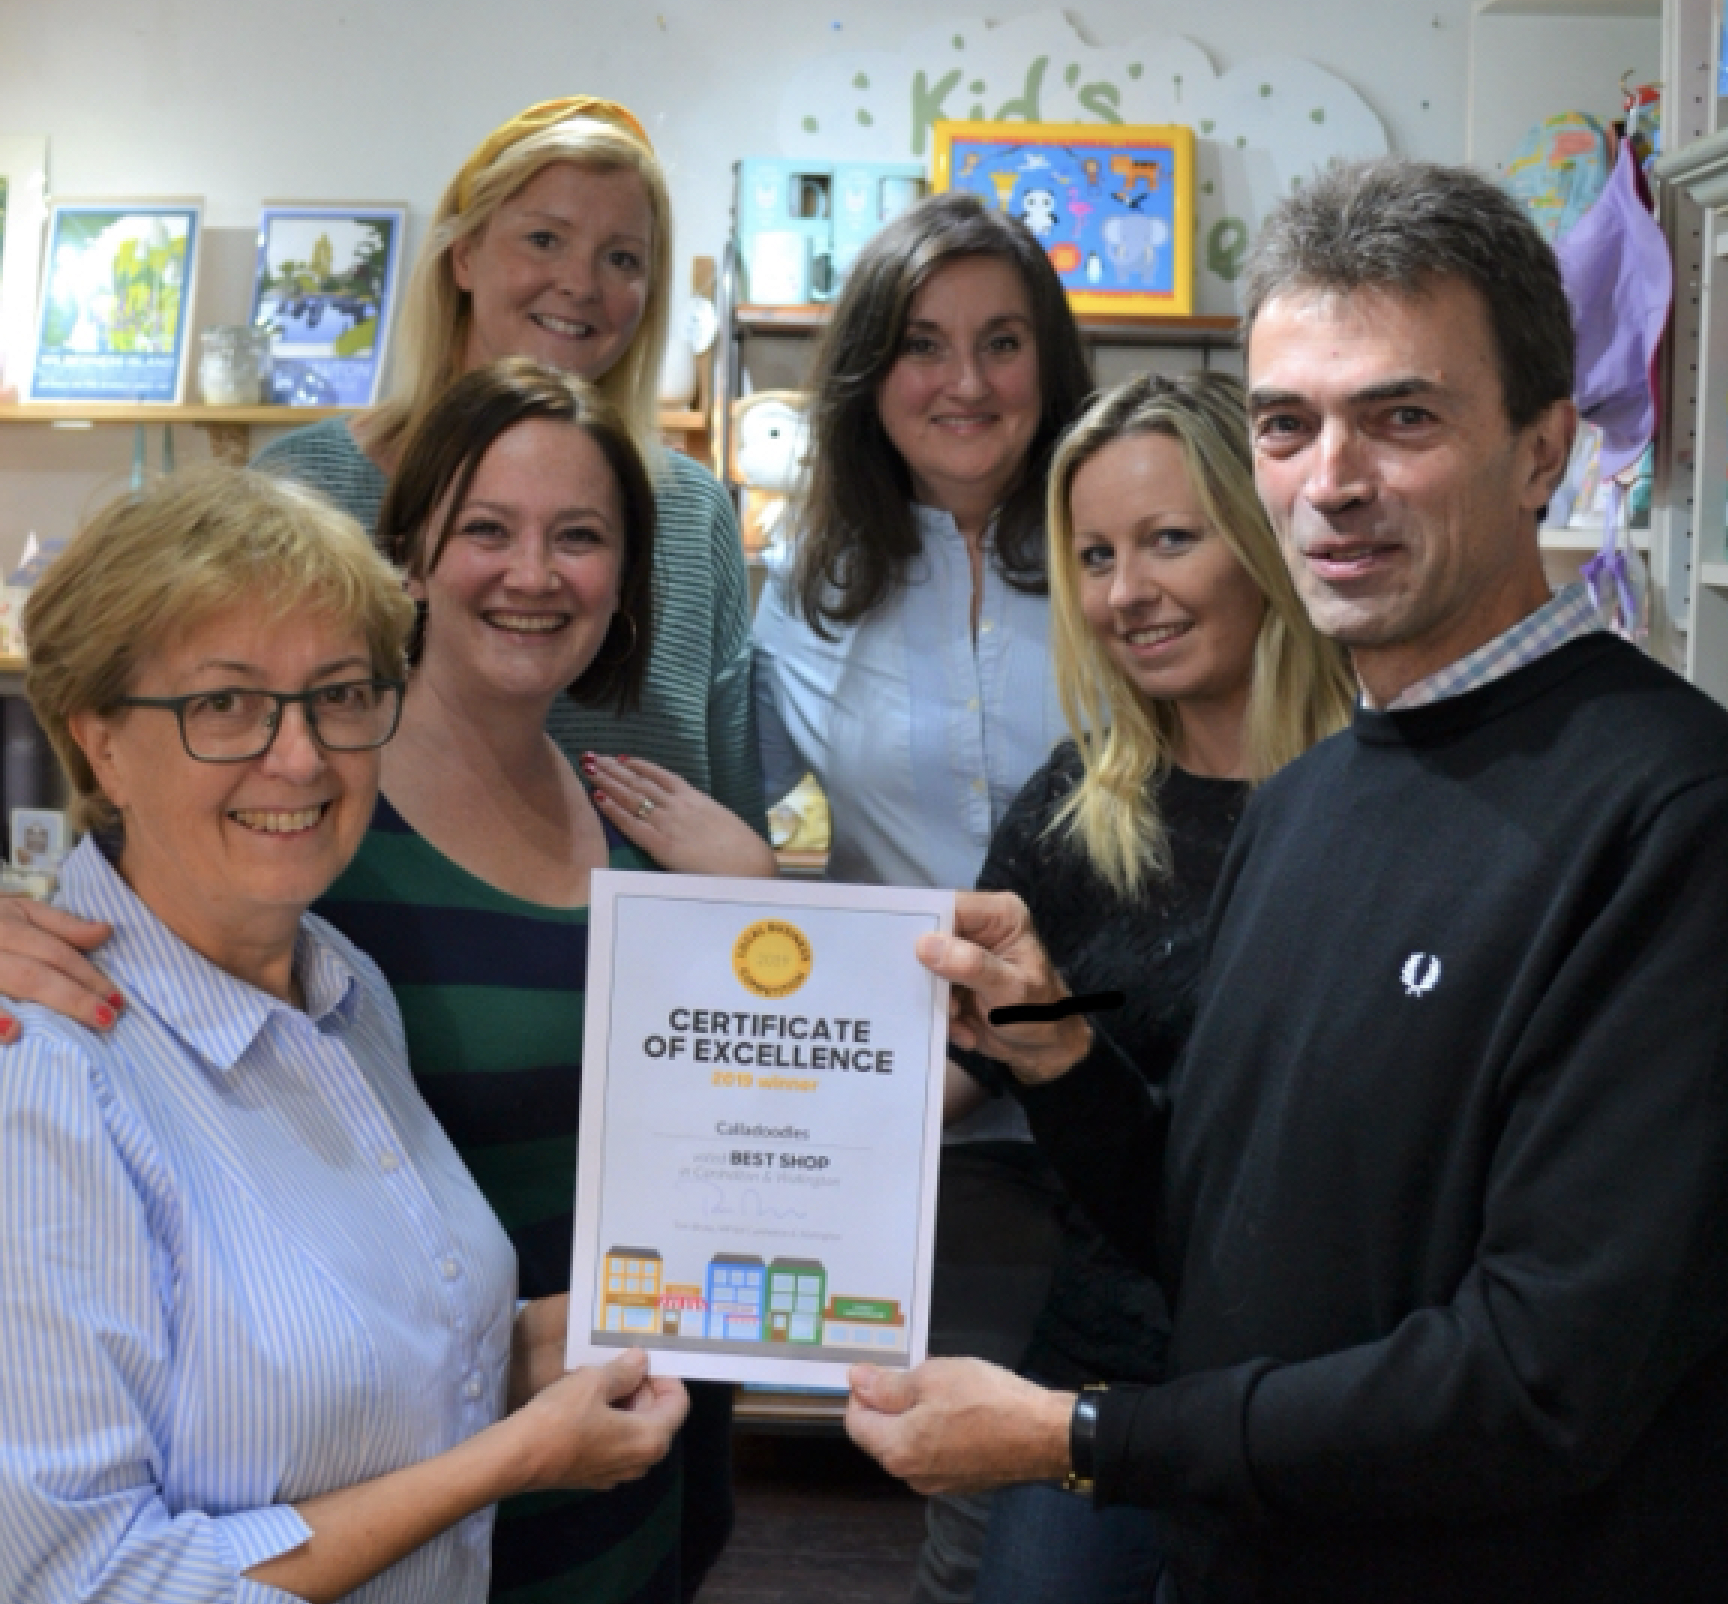 Above: MP Tom Brake presenting Liz Killick (front left) and her Calladoodles team mates with their Certificate of Excellence.